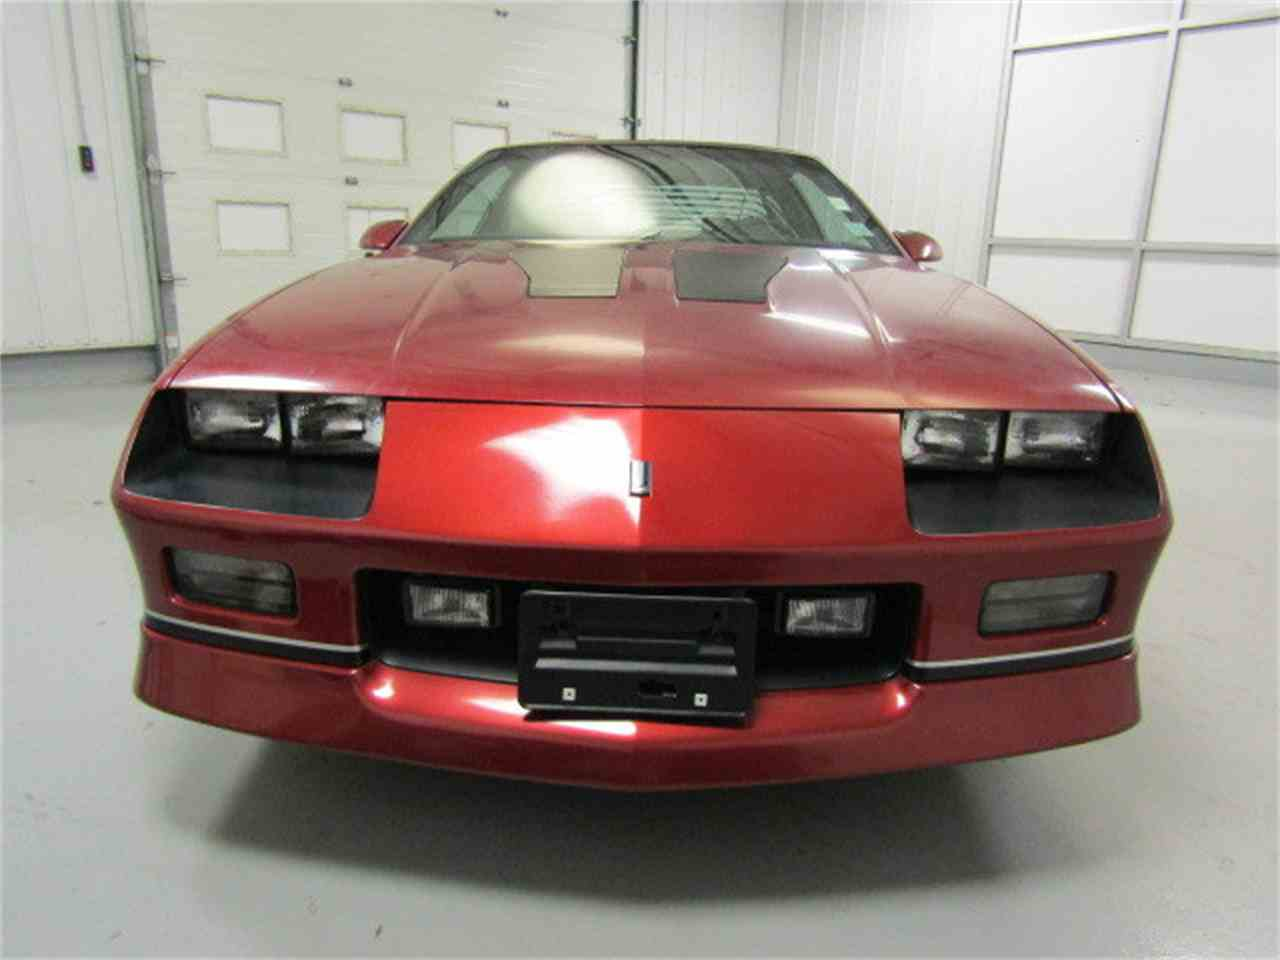 Large Picture of '86 Chevrolet Camaro located in Virginia - $24,900.00 Offered by Duncan Imports & Classic Cars - JLAE